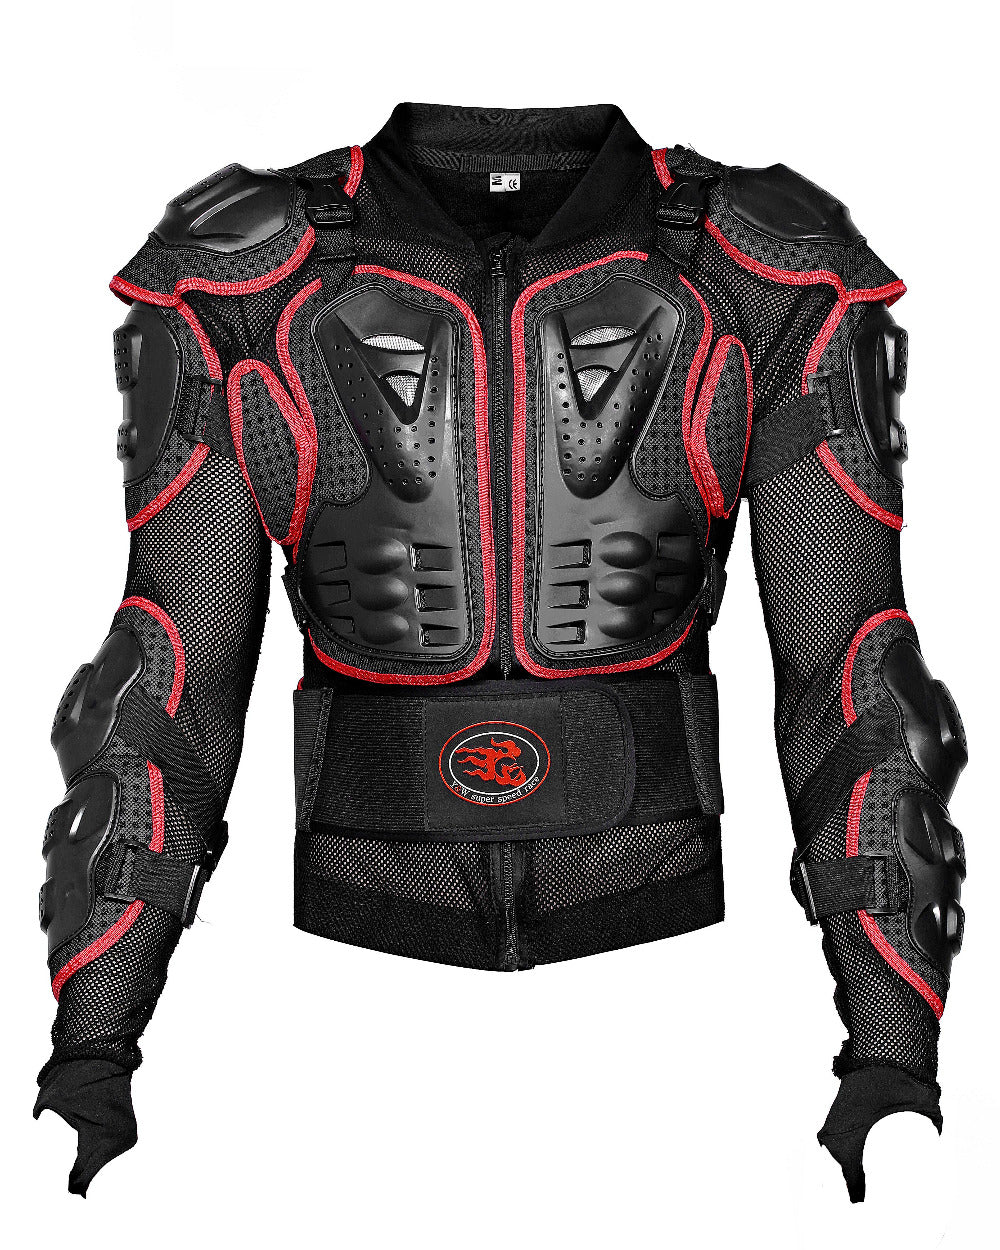 Motorcycle back protector shoulder protection chest protection jacket protective clothing - Trivoshop